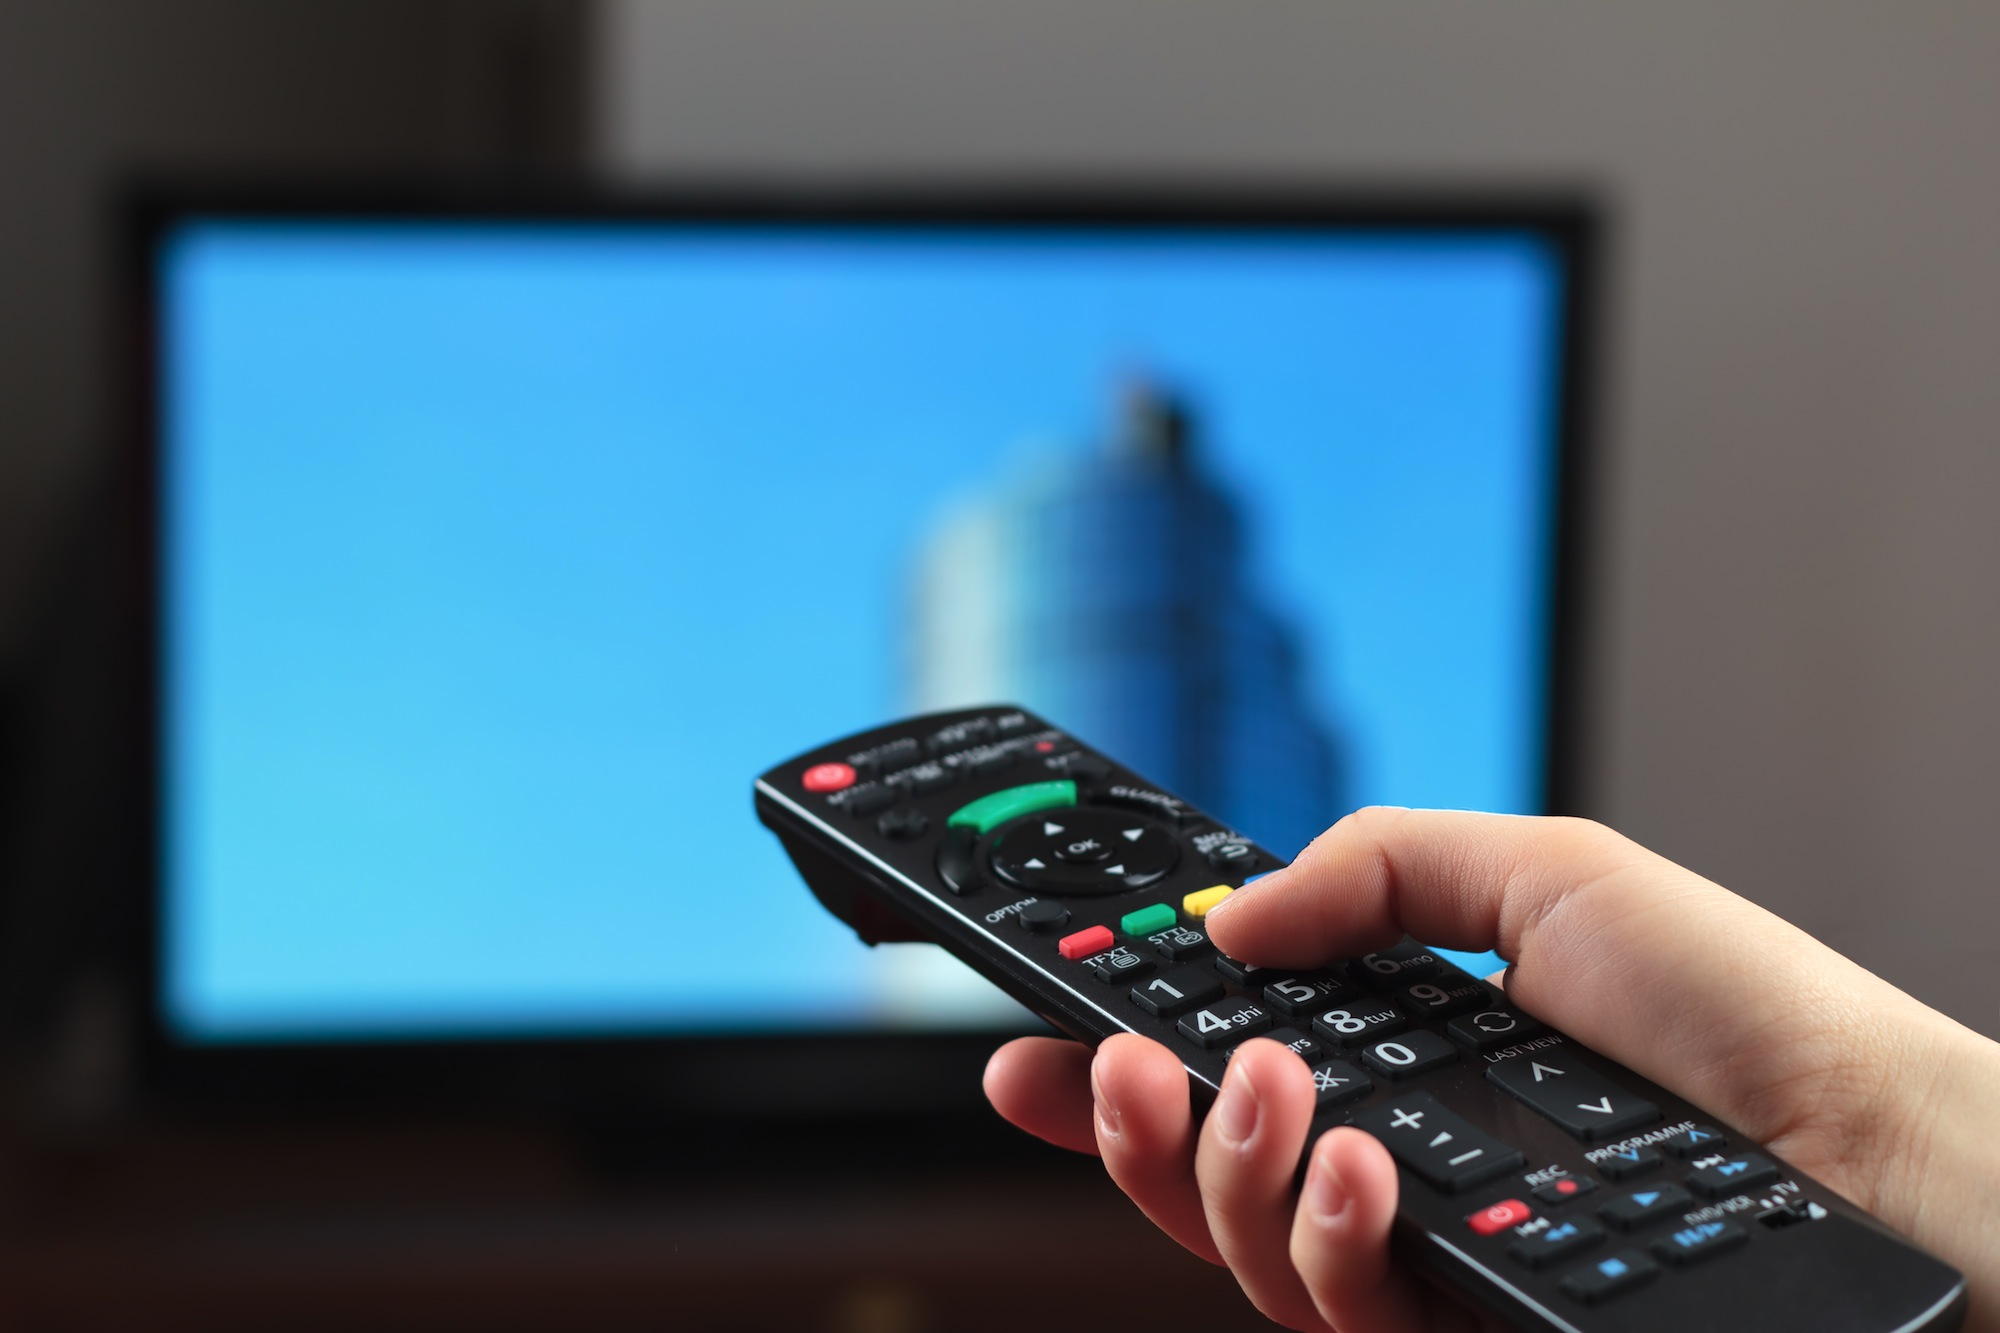 Ecommerce innovation - t-commerce (television commerce)